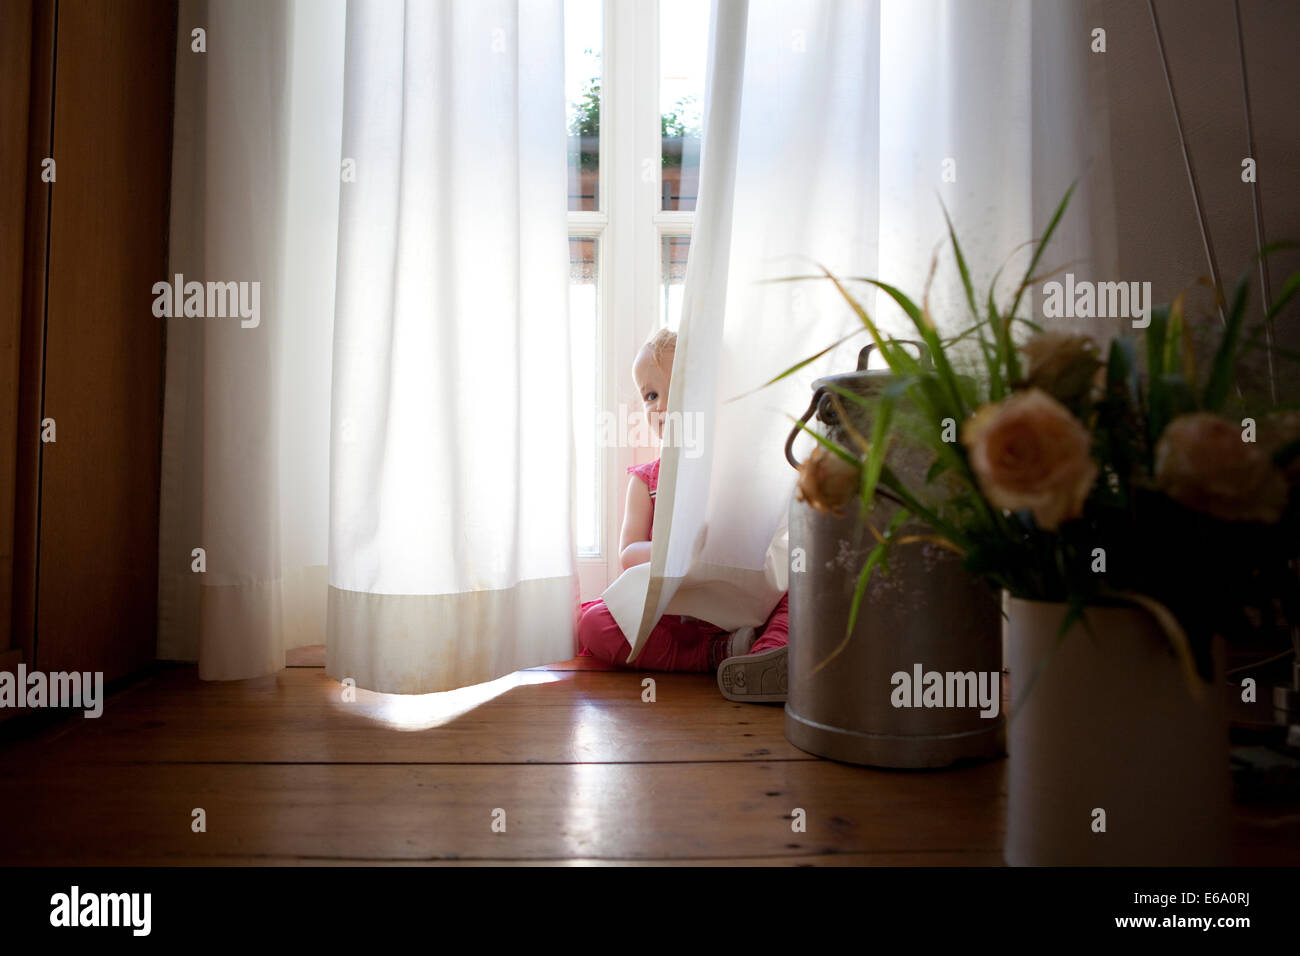 Young girl playing and peering out from behind opaque white curtains. - Stock Image